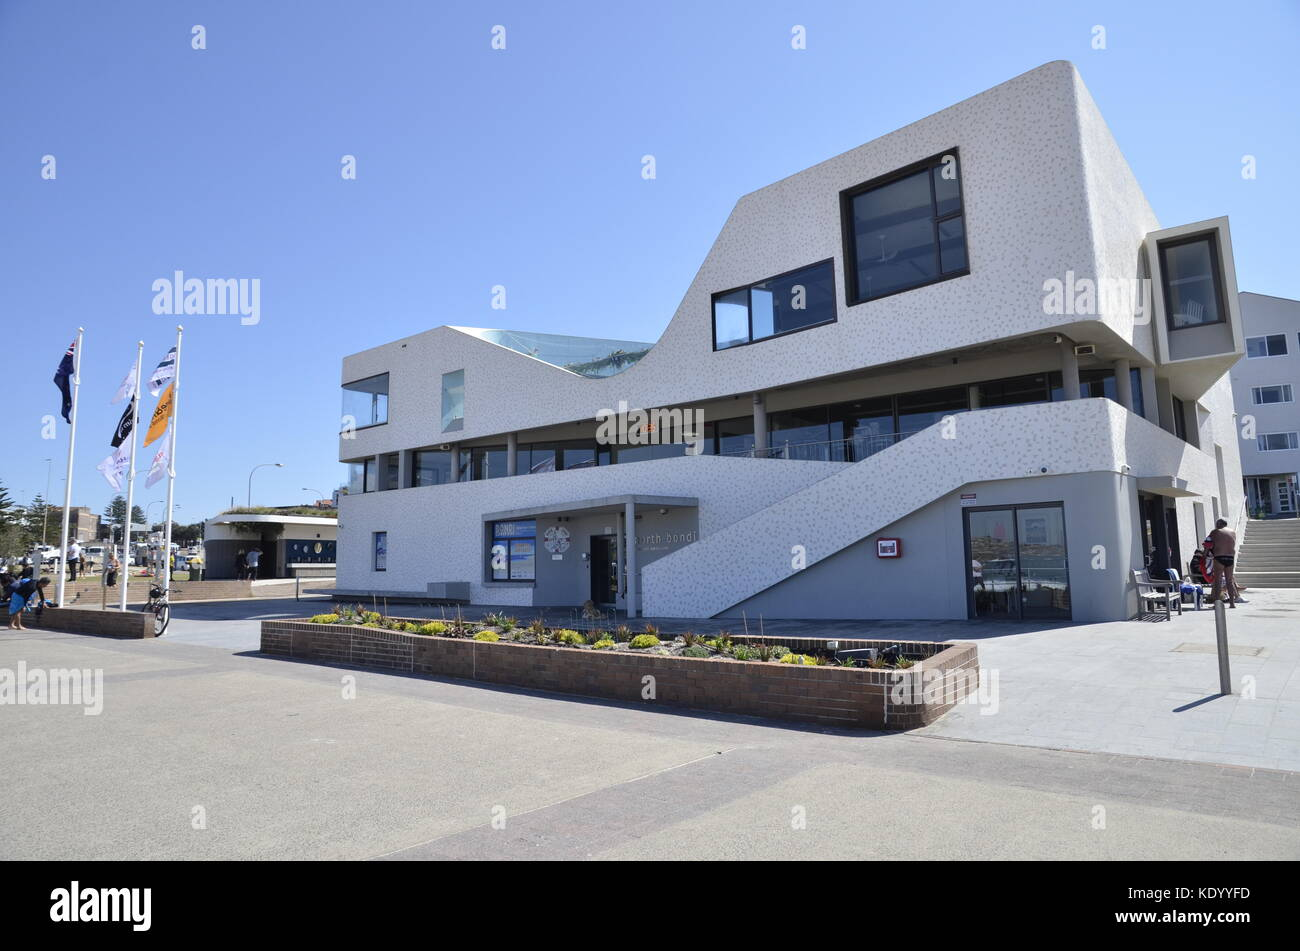 Surf Club Australia High Resolution Stock Photography And Images Alamy